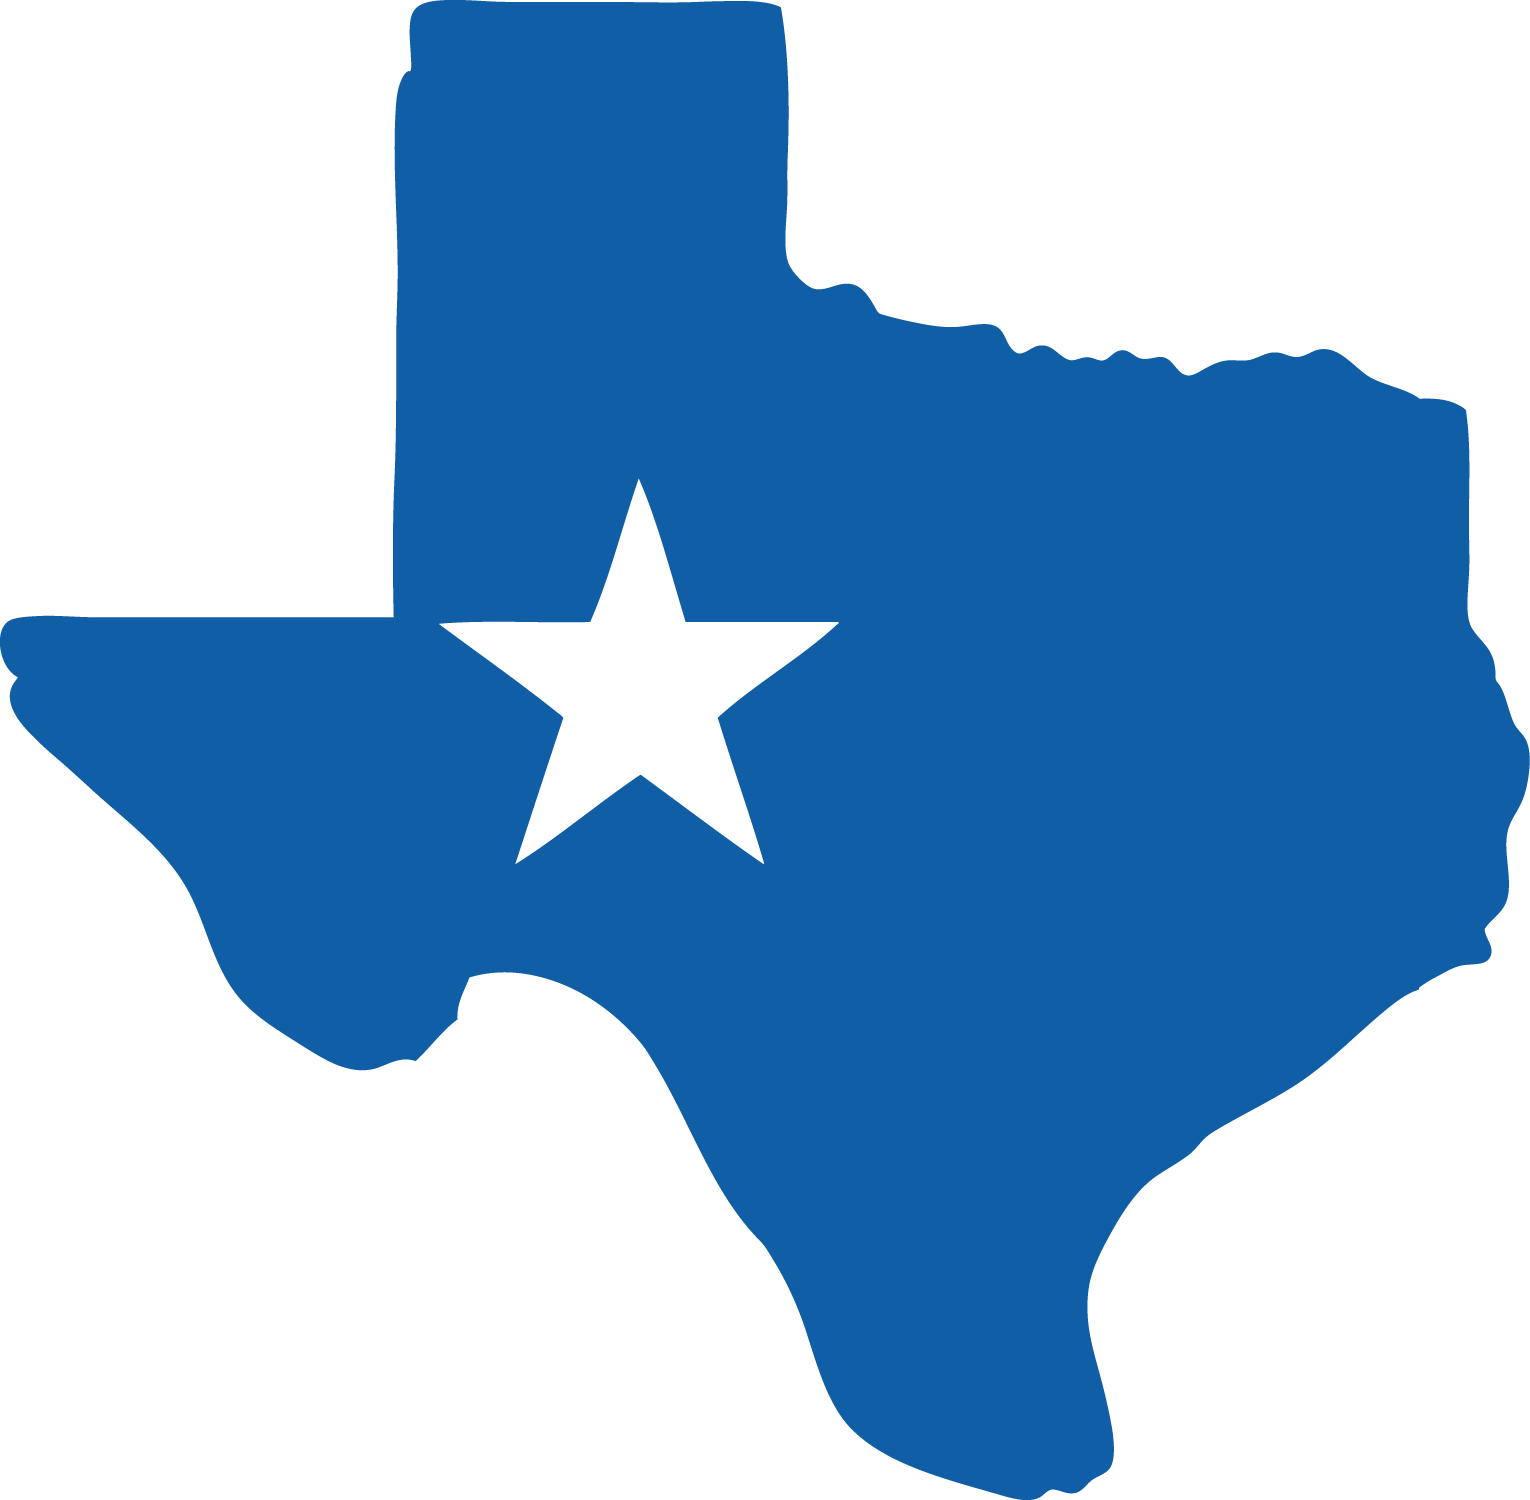 Texas outline clipart free images 12